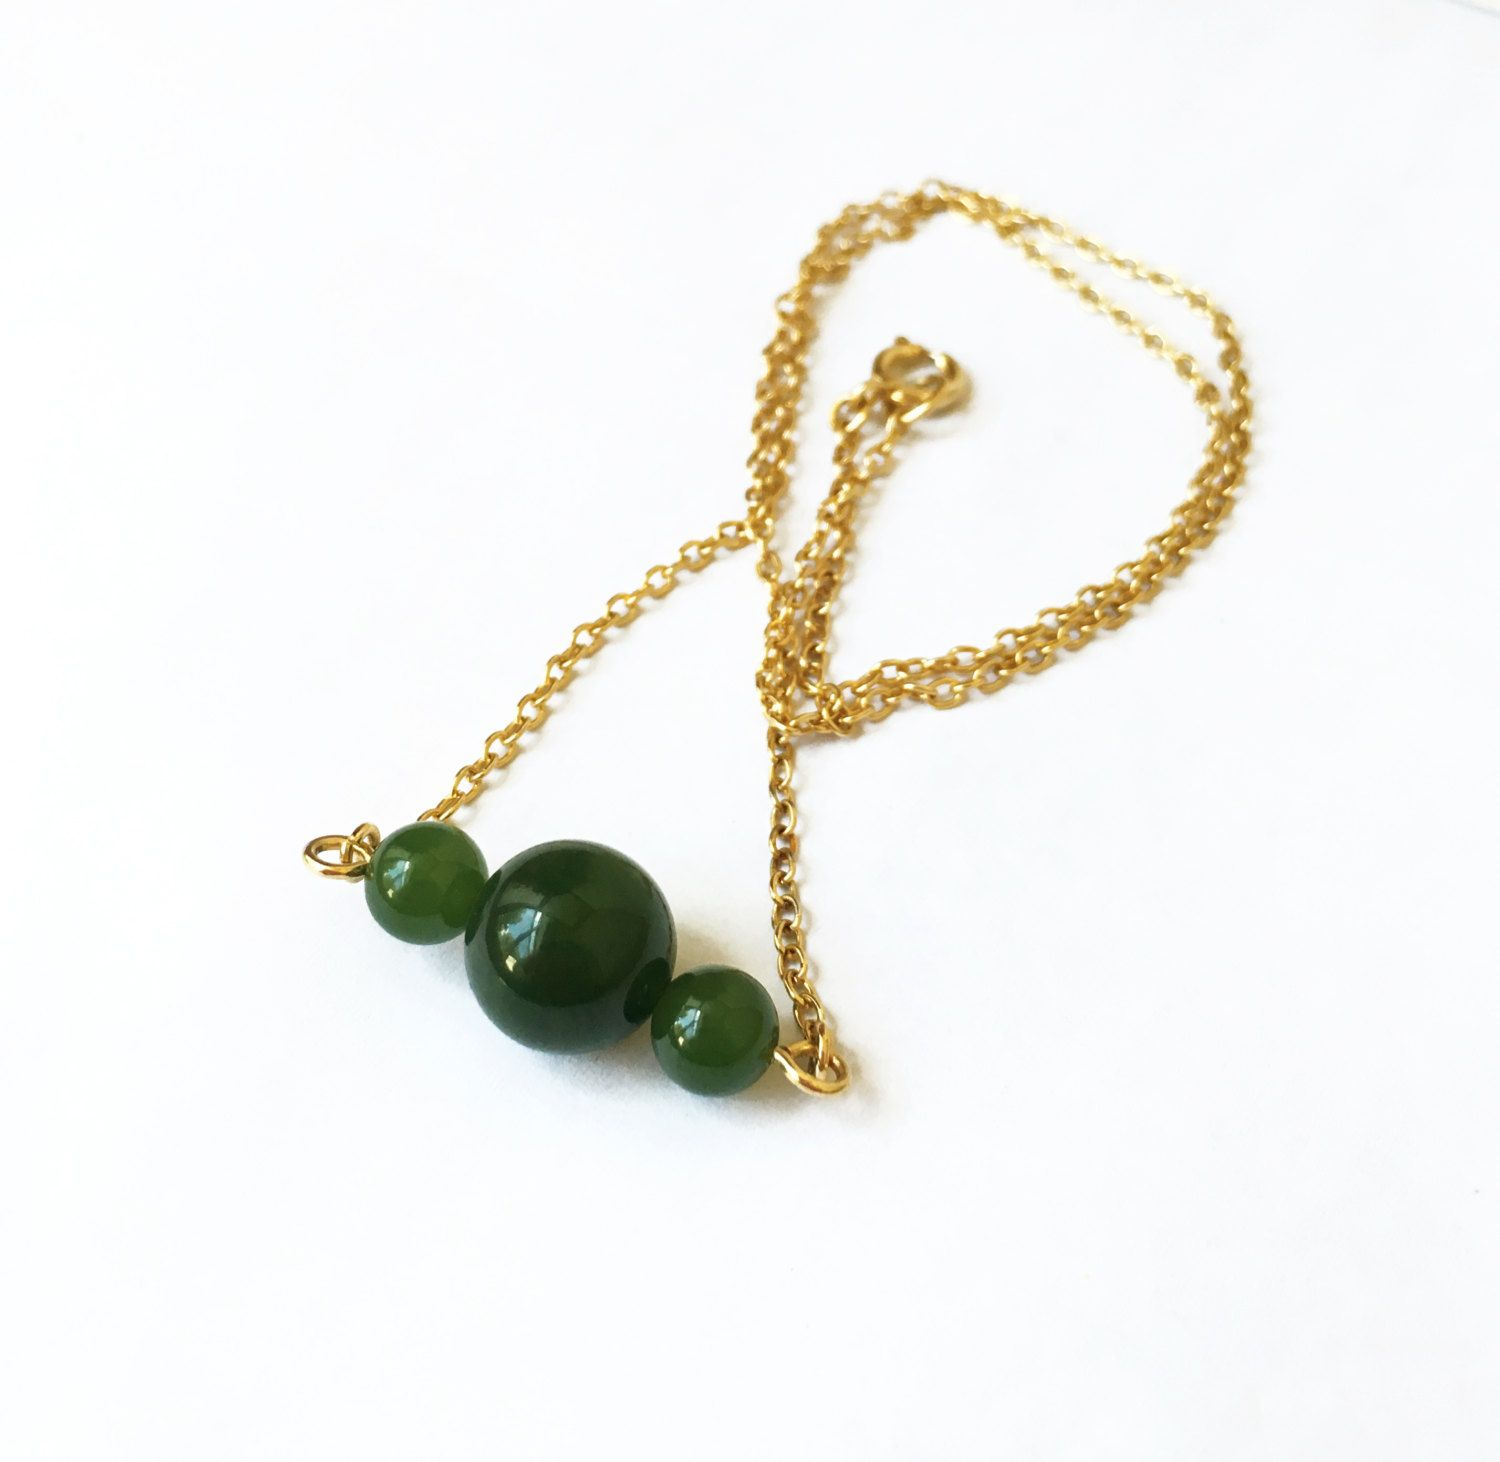 Jade Green Chained Necklace